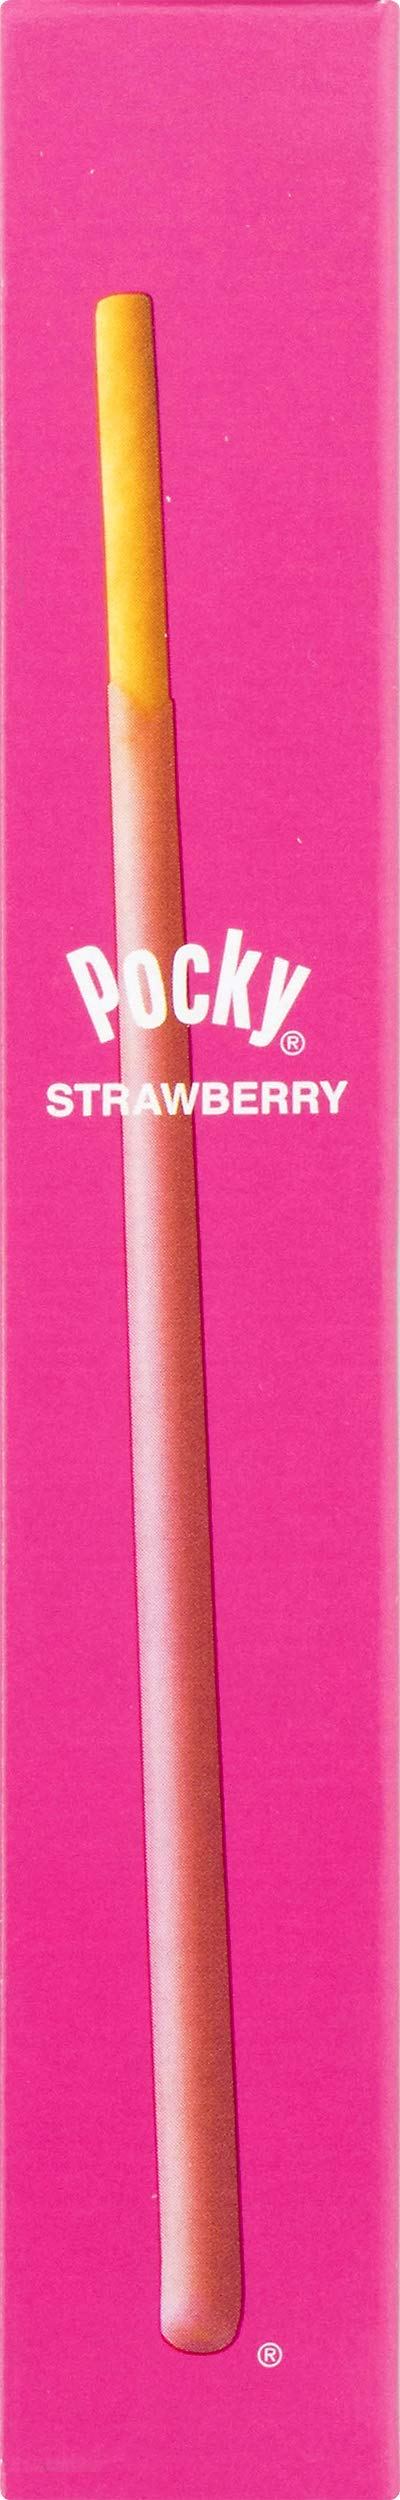 Glico Pocky Biscuit Sticks with Strawberry Cream, 1.41 ounce Boxes - Pack of 14 by Glico (Image #6)